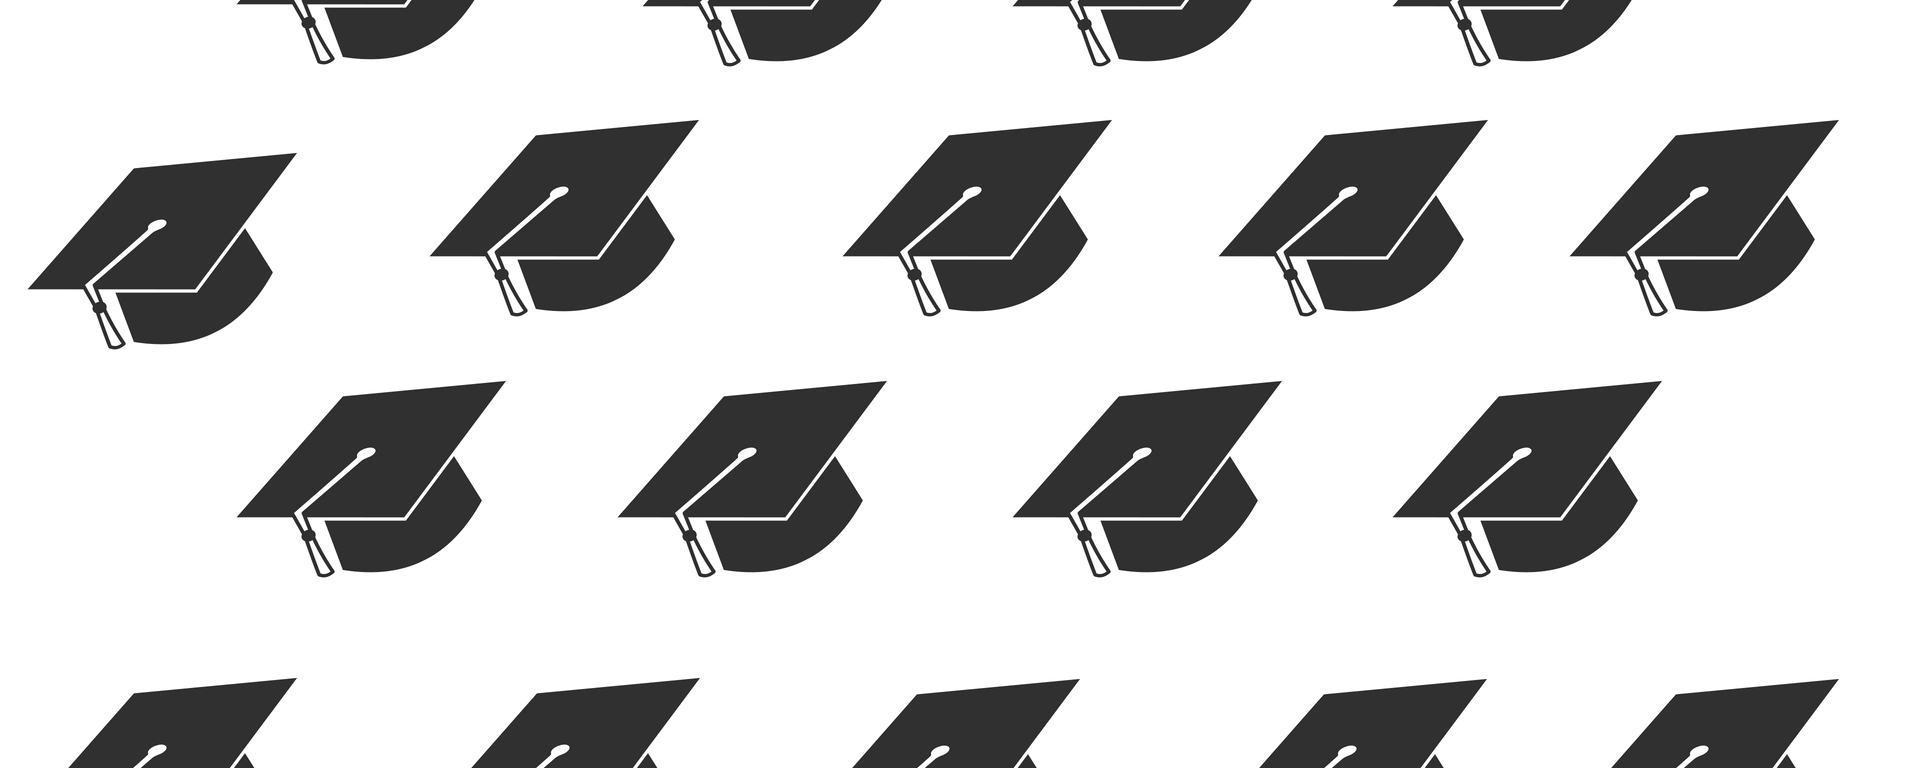 a pattern of black graduation caps on a white background